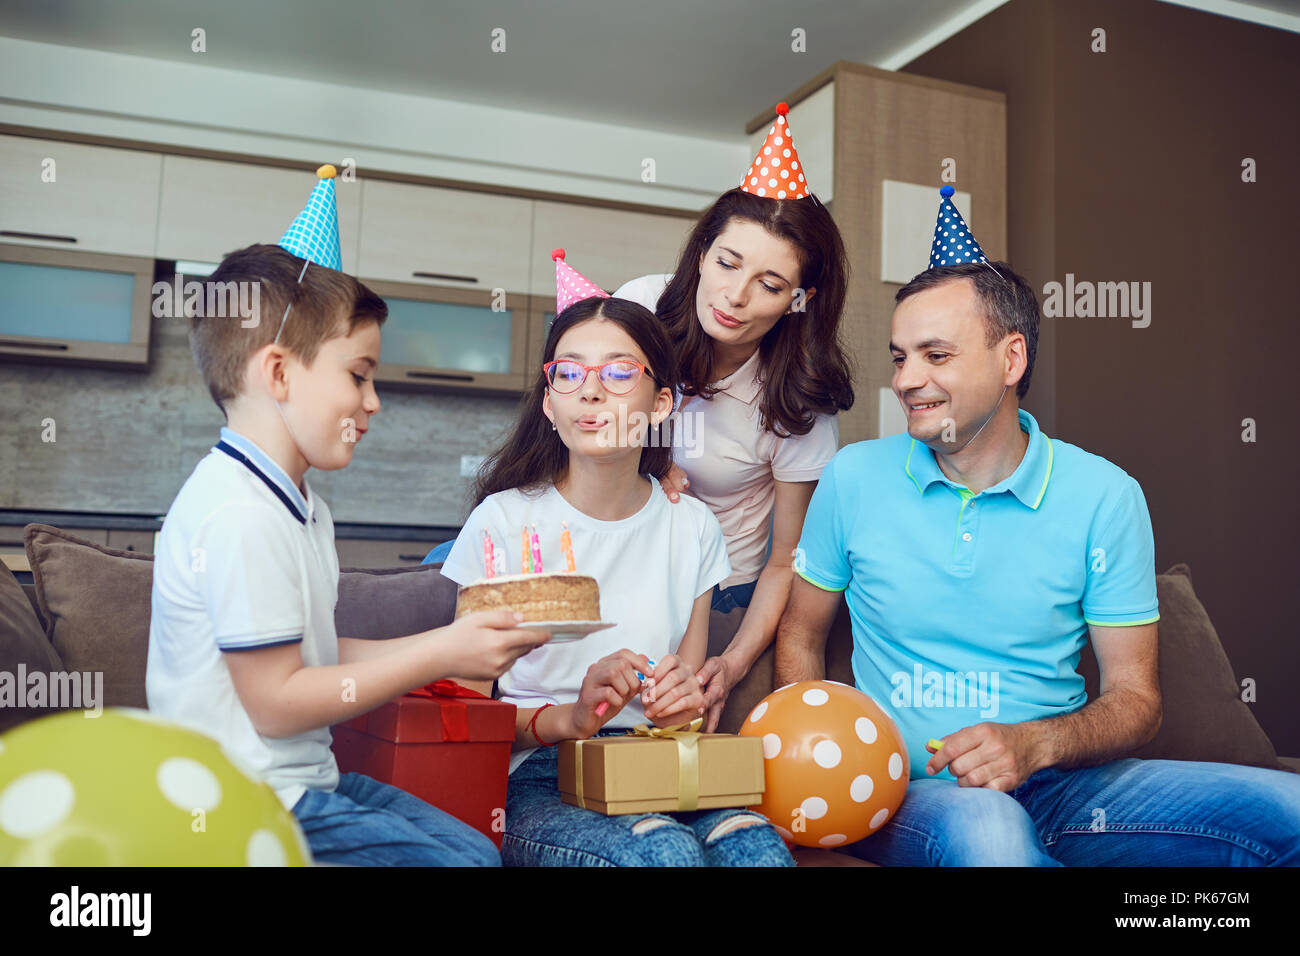 Family celebrates birthday with a birthday cake. Stock Photo